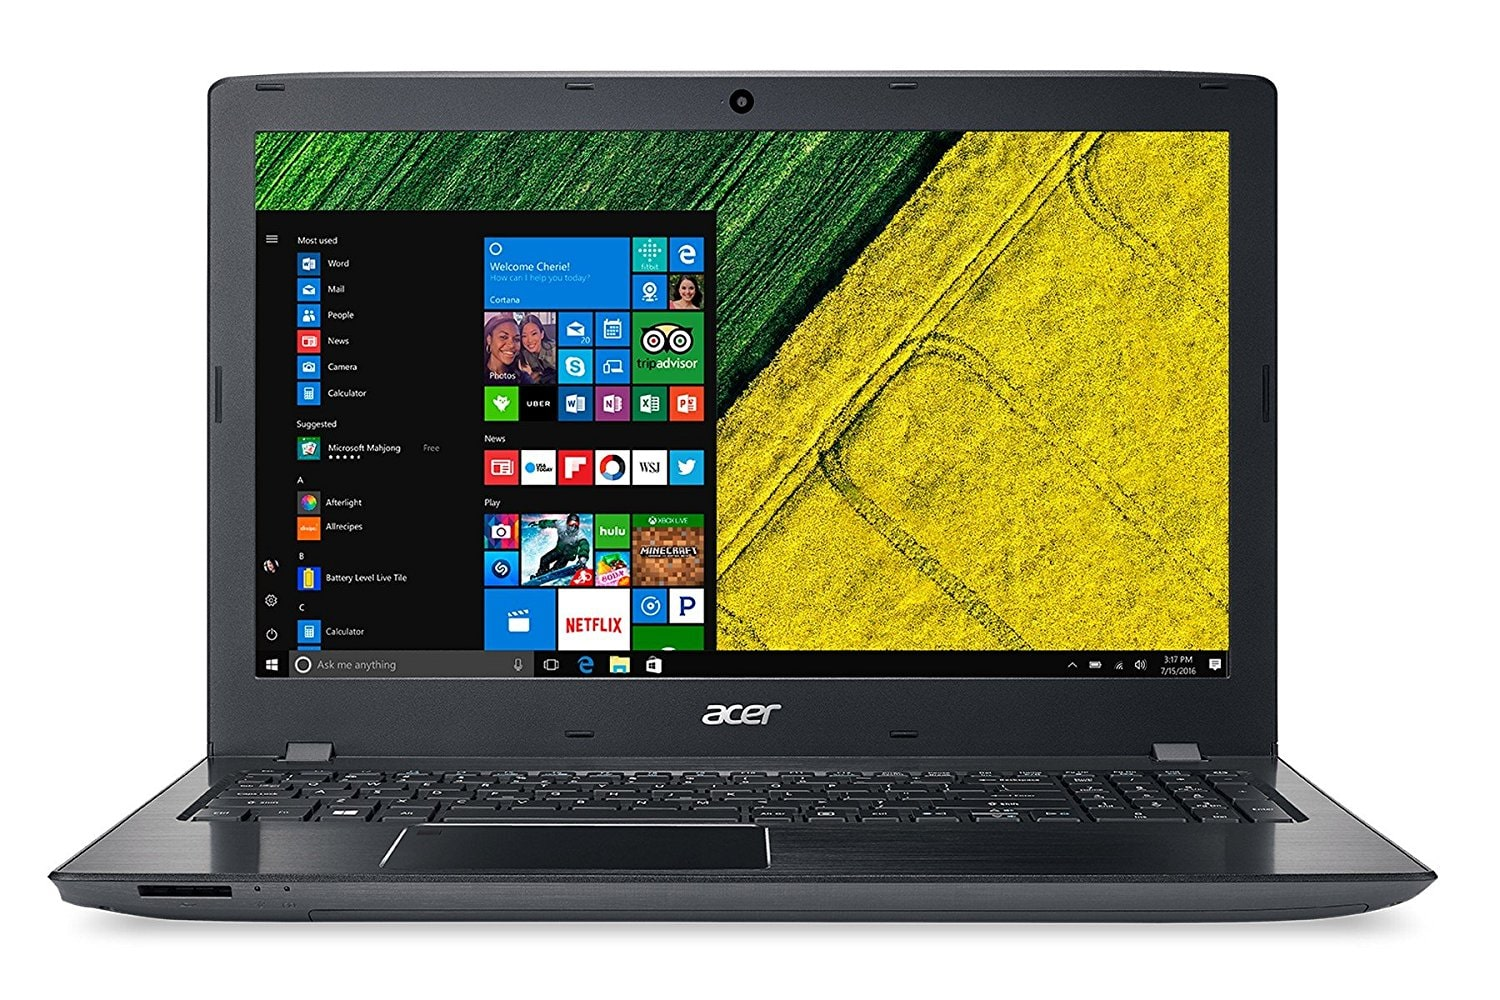 Acer Aspire E15 E5-576 (Core i3 -7th Gen/4 GB/1 TB/39.62 cm (15.6 inch)/ FHD/Windows 10) UN.GRSSI.005 (Obsidian Black, 2.2 kg)